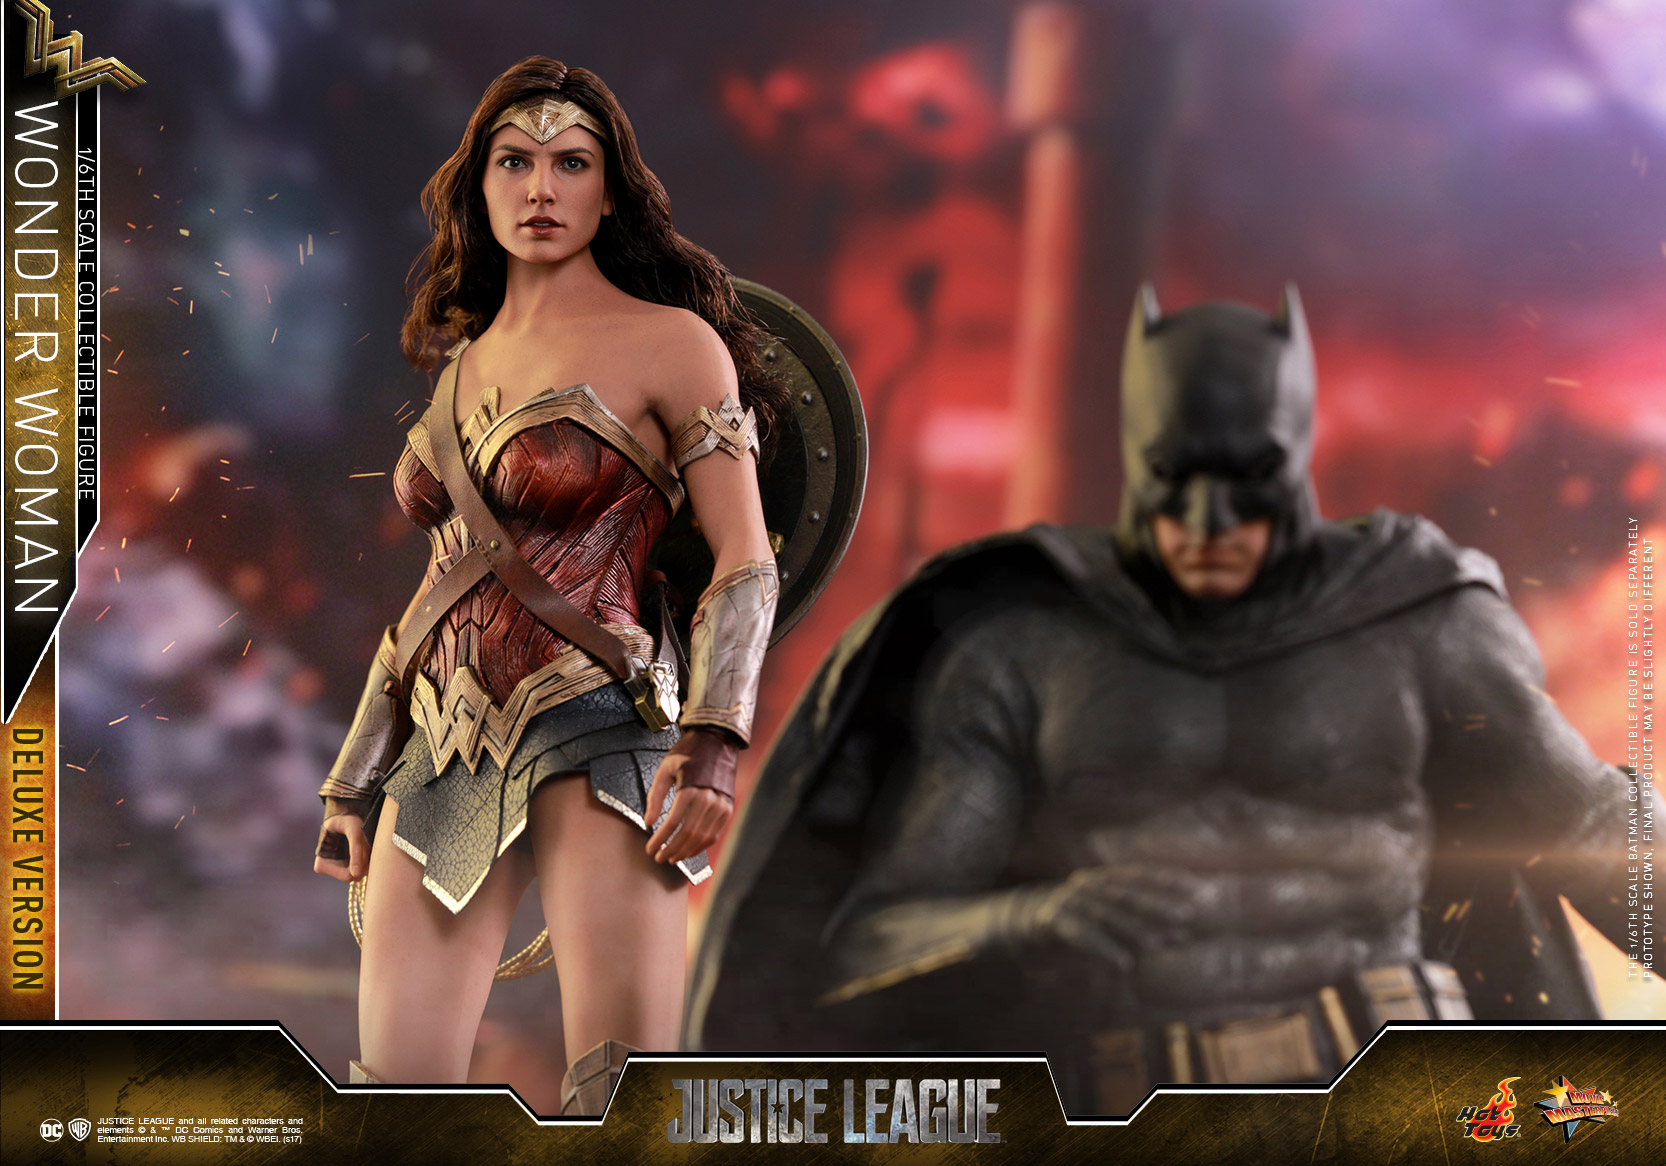 Hot-Toys-Justice-League-Wonder-Woman-collectible-figure-Deluxe_PR-11.jpg